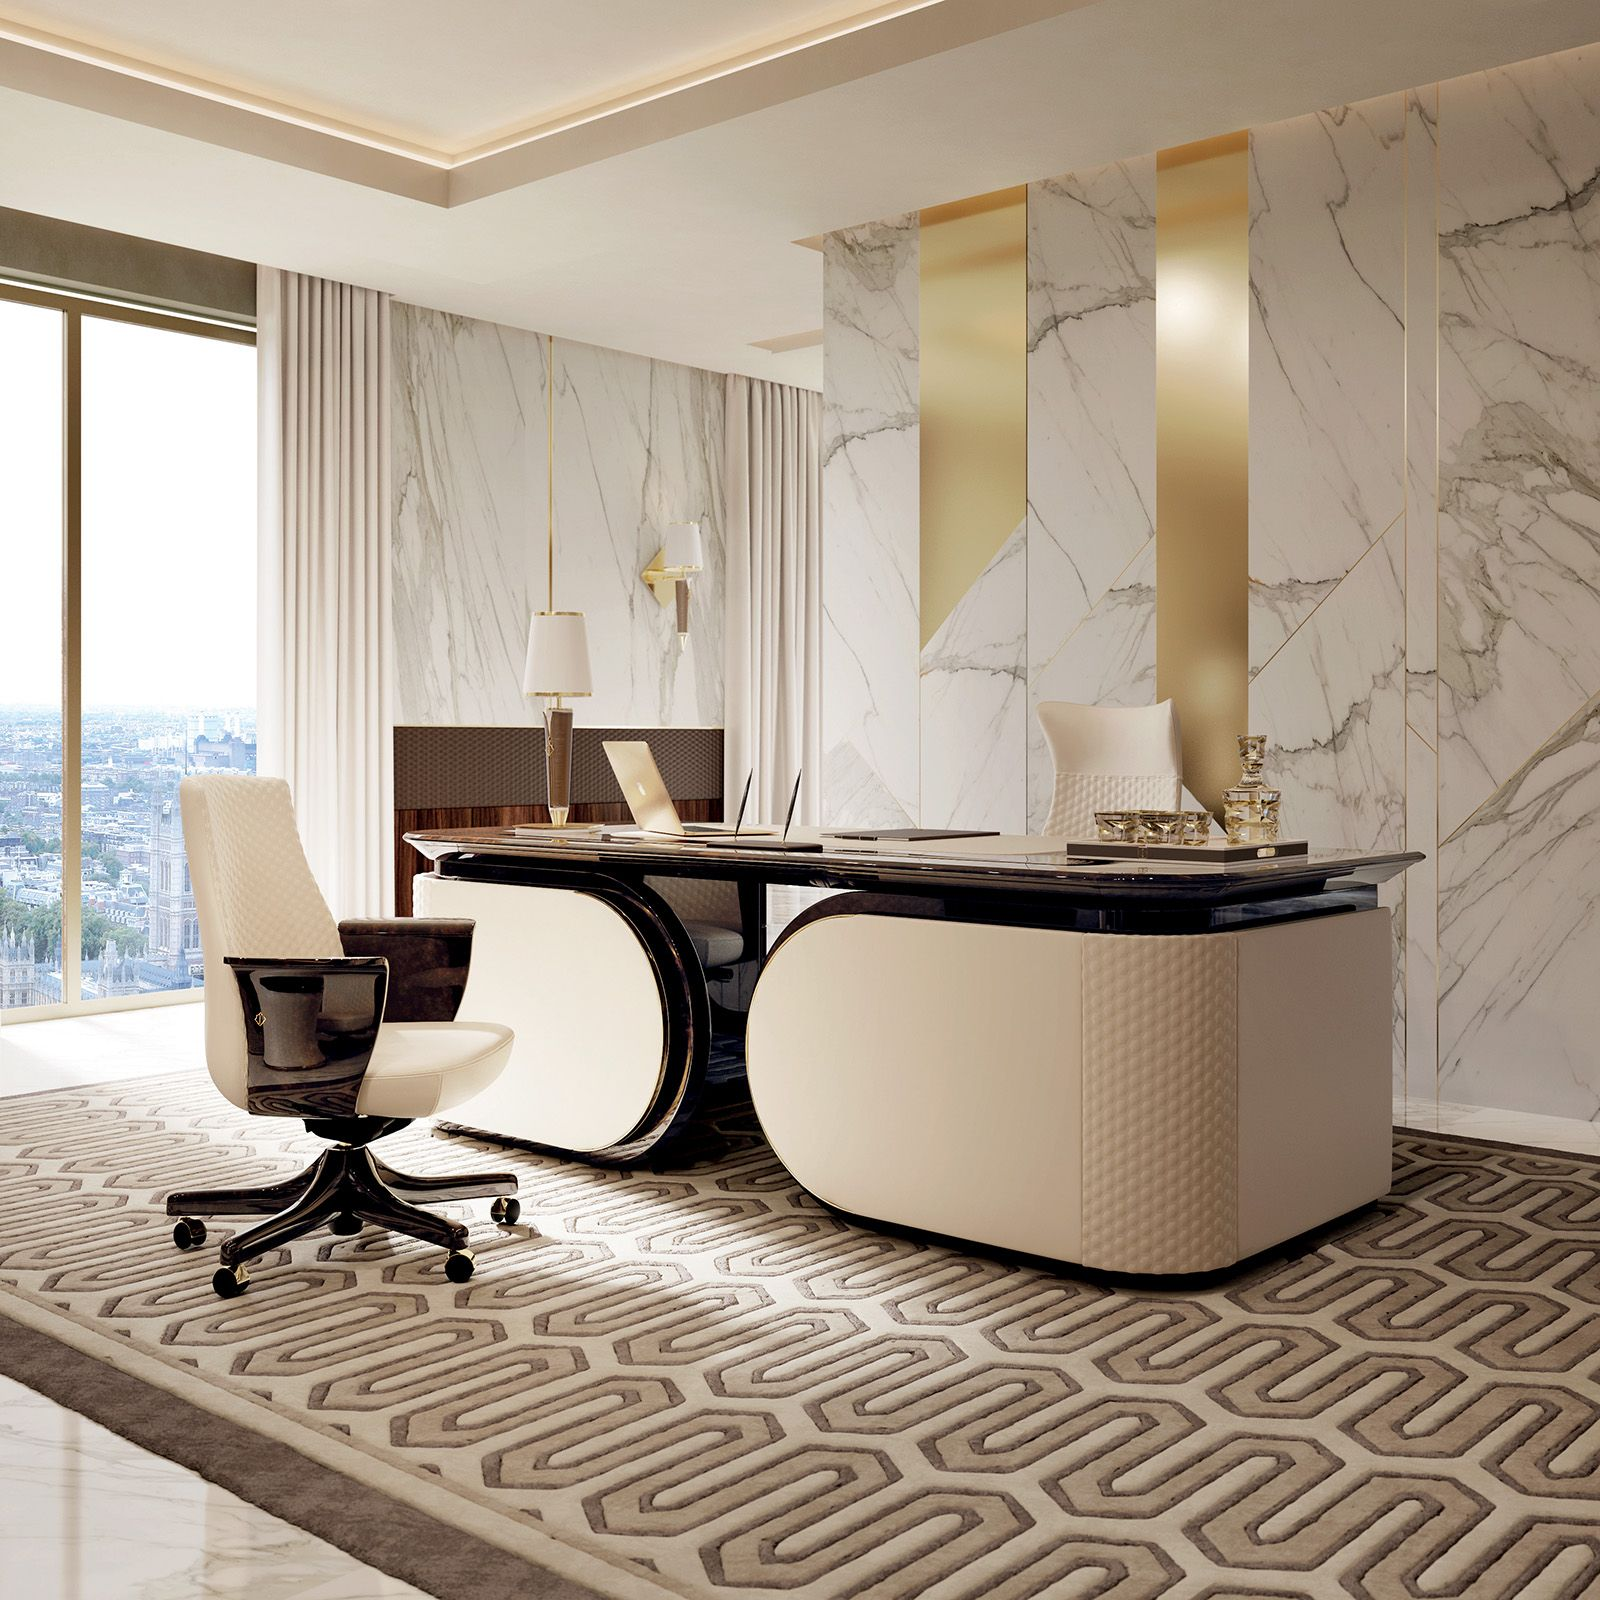 Vogue collection italian luxury office desk for Office decoration photos